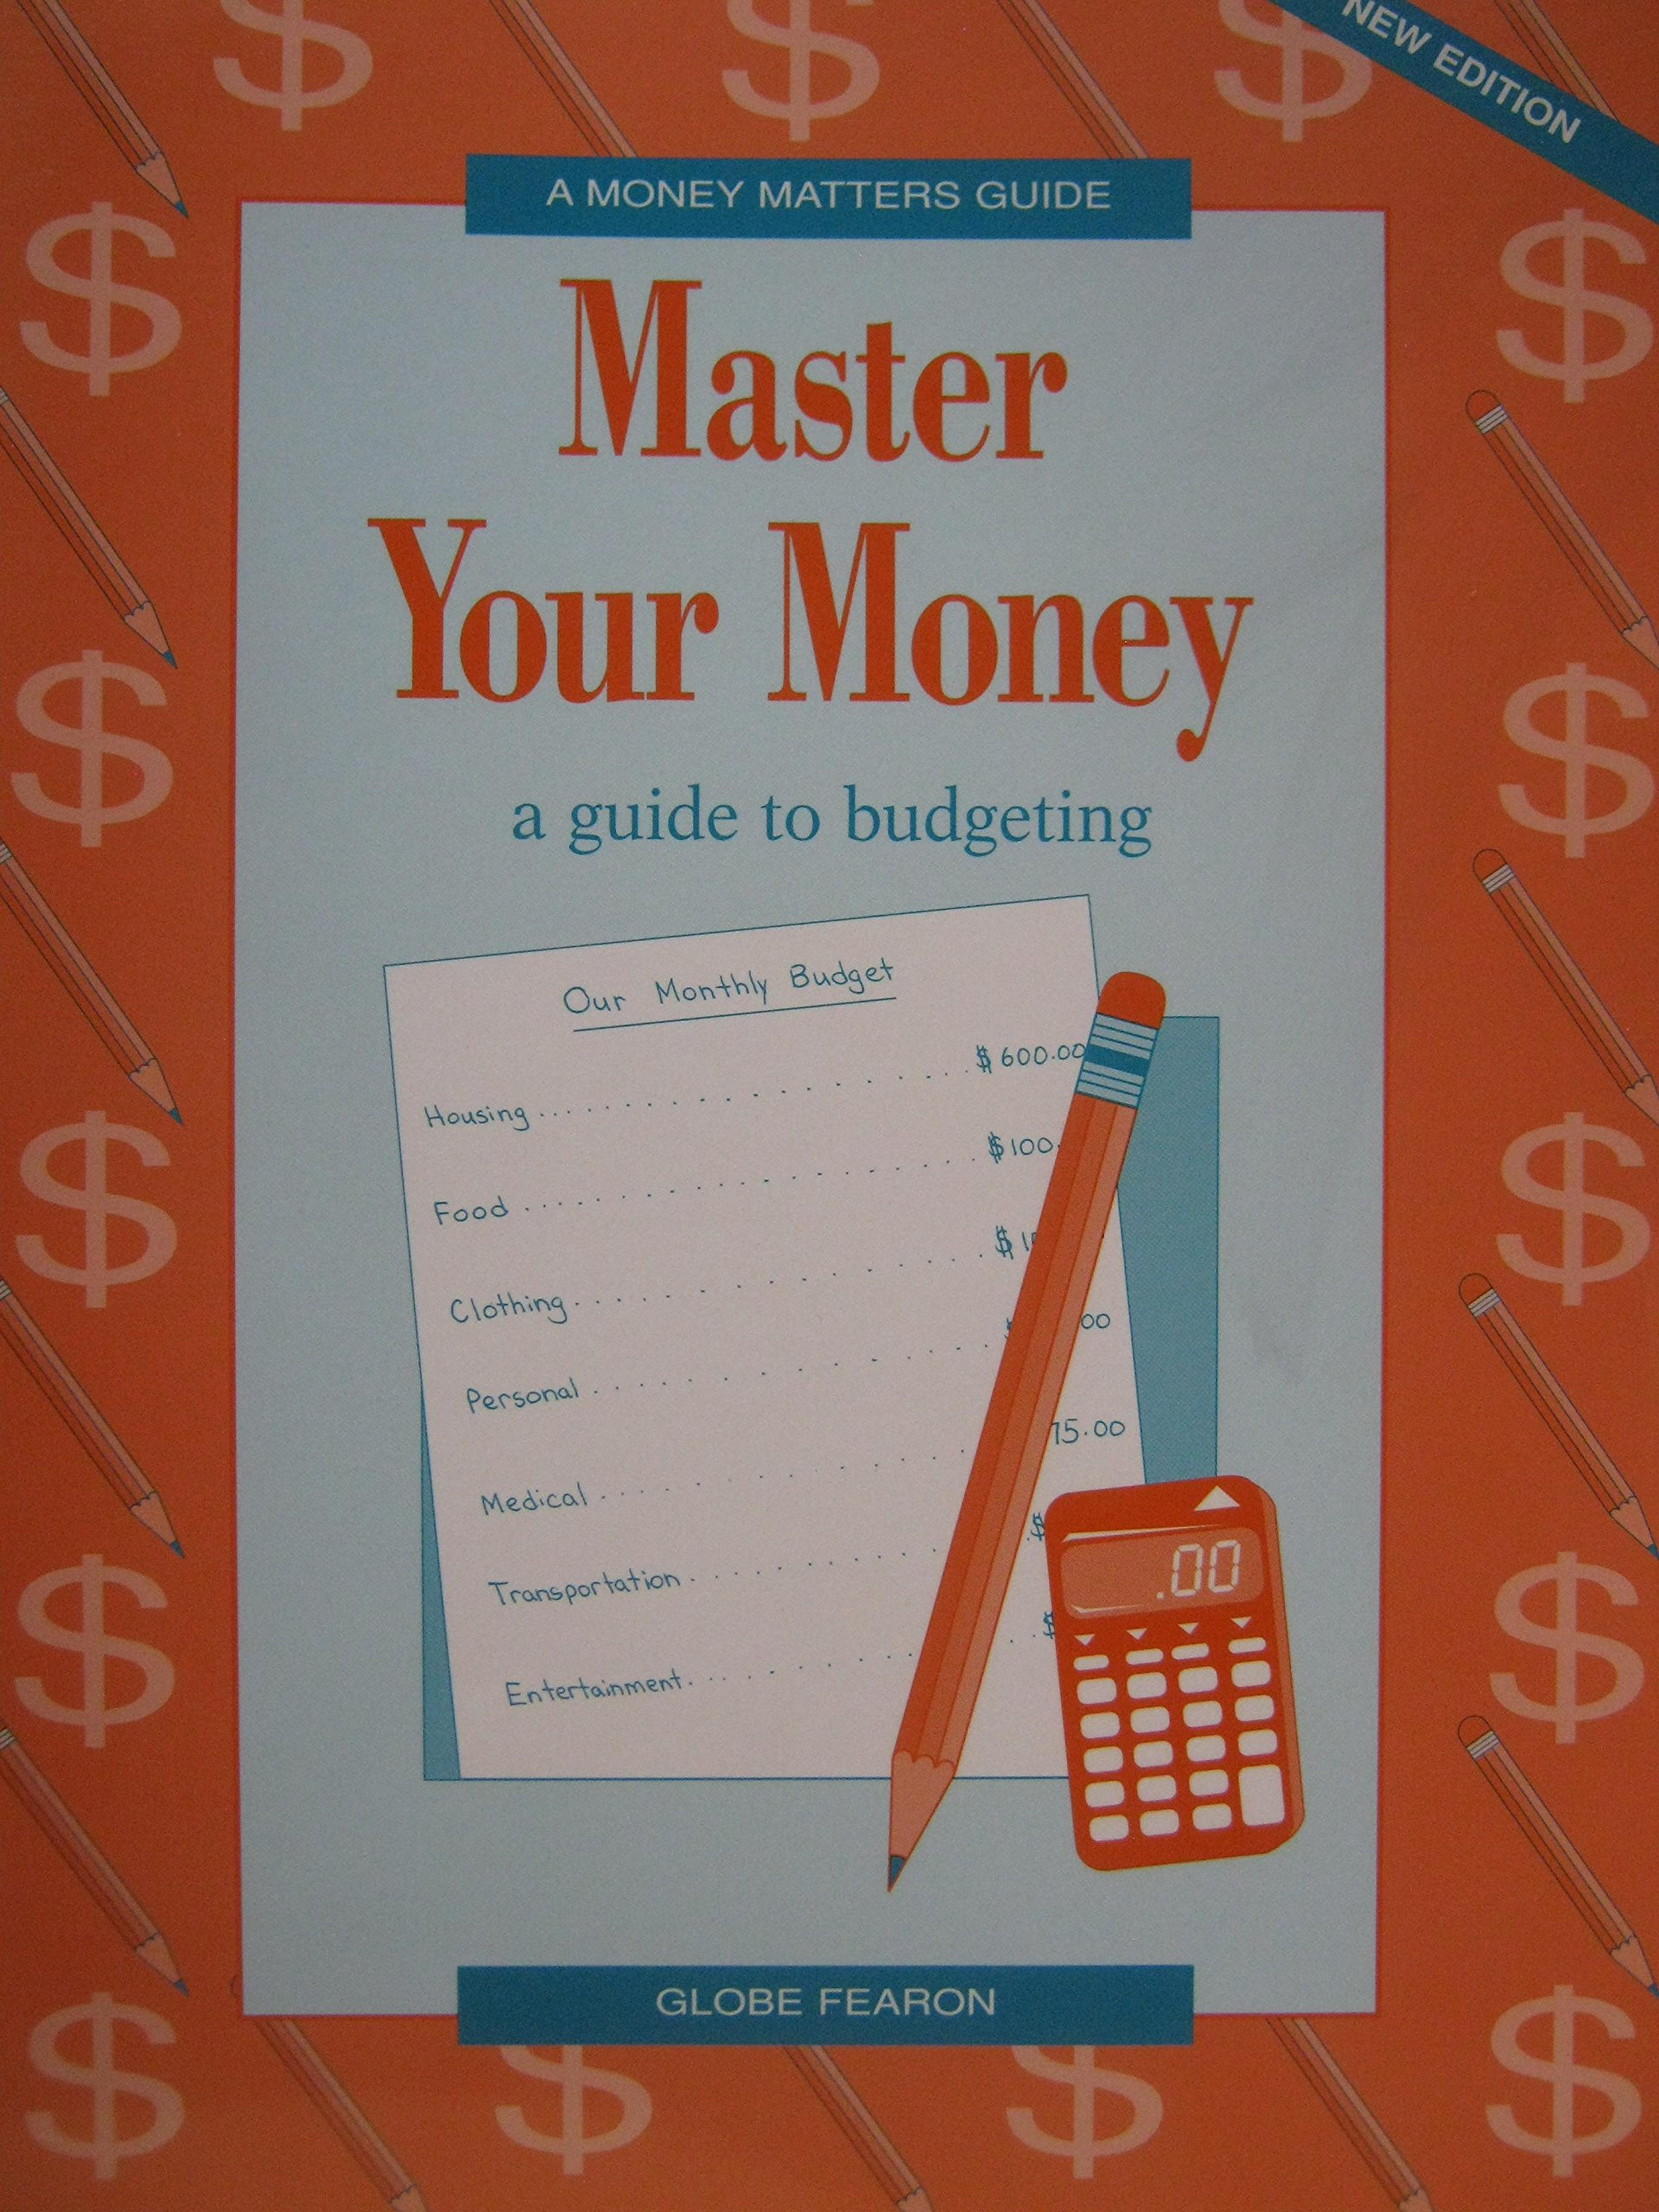 MONEY MATTERS GDS:MASTR YOUR MONEY SE 97 (Money Matters Guides) by Brand: FEARON